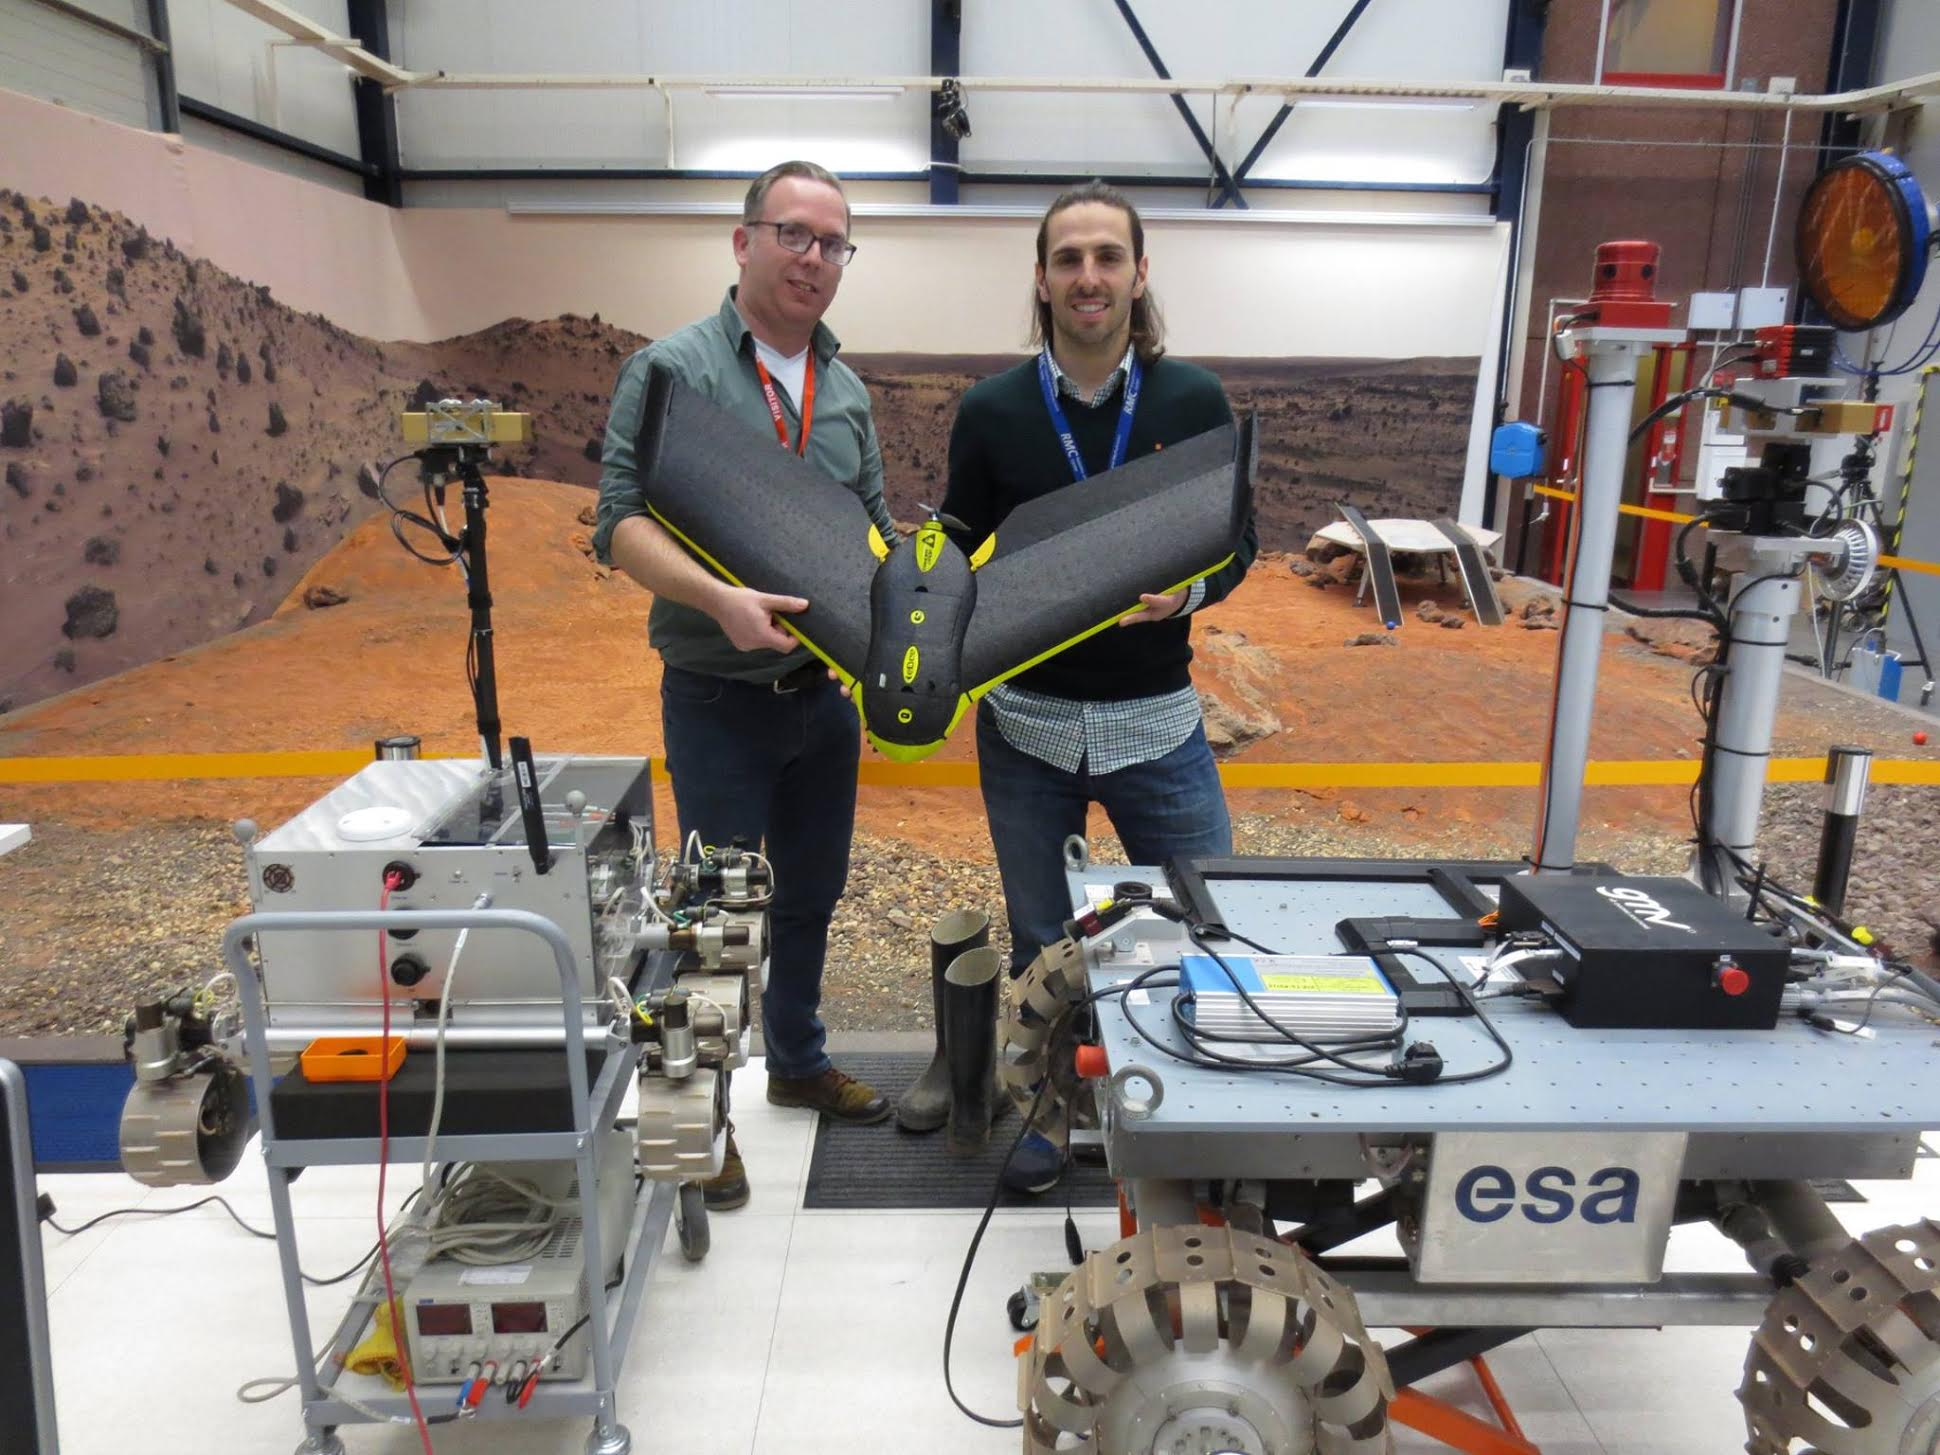 Carl Lankveld (of Geometius, a senseFly distributor in the Netherlands) poses with Martin Azkarate and the eBee in the lab at ESTEC